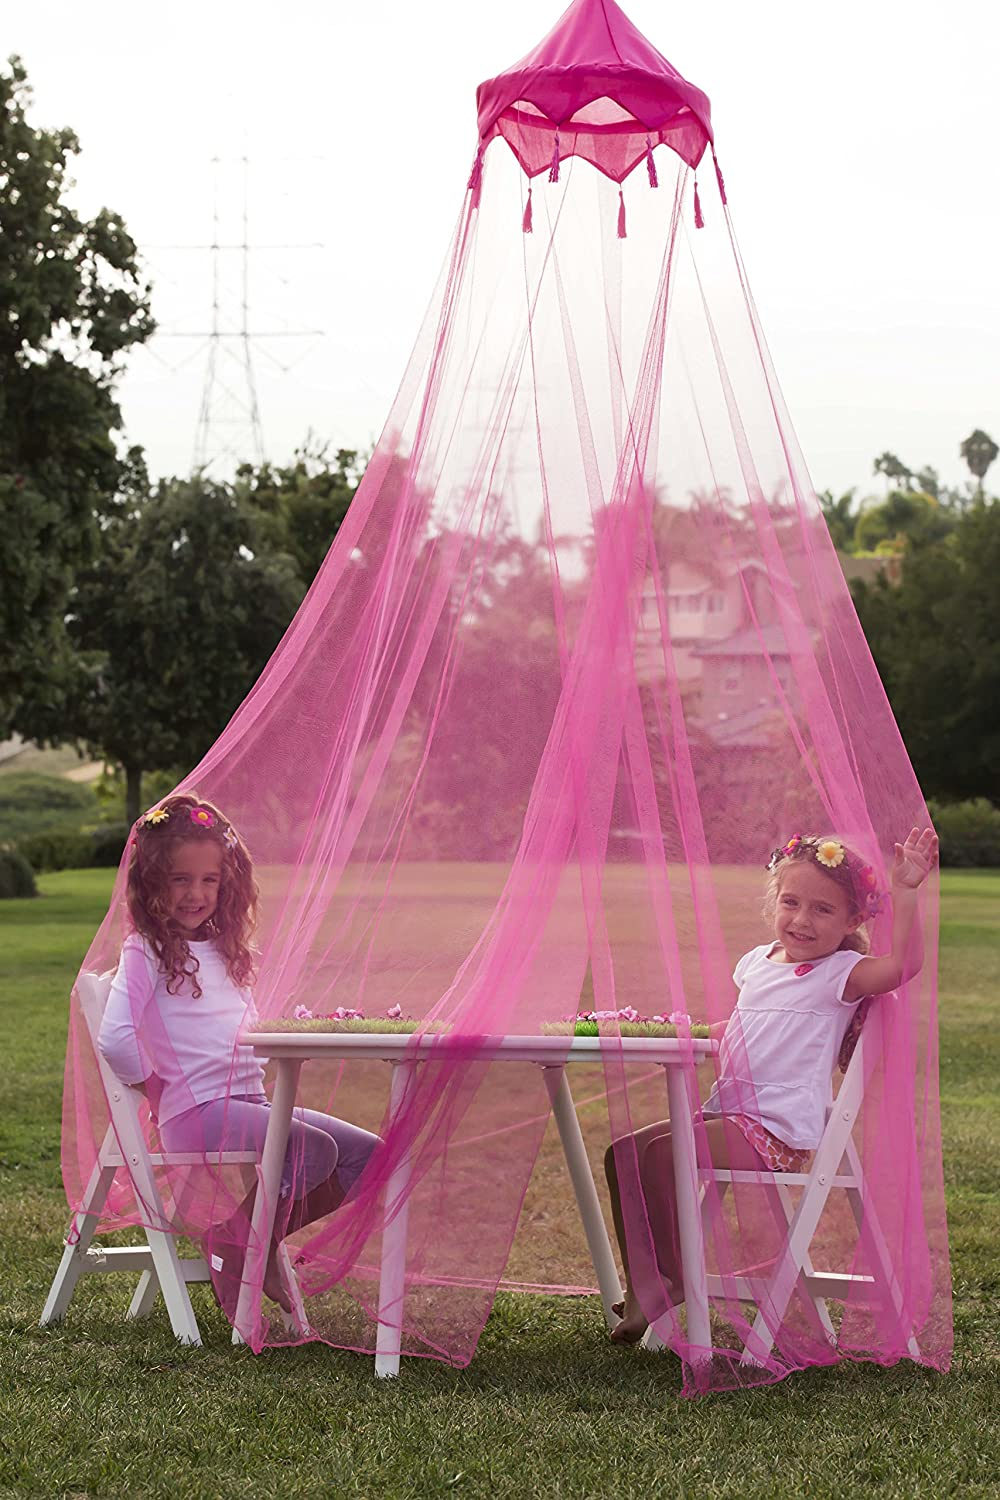 Butterfly Craze 174 Girls Hot Pink Princess Play Tent And